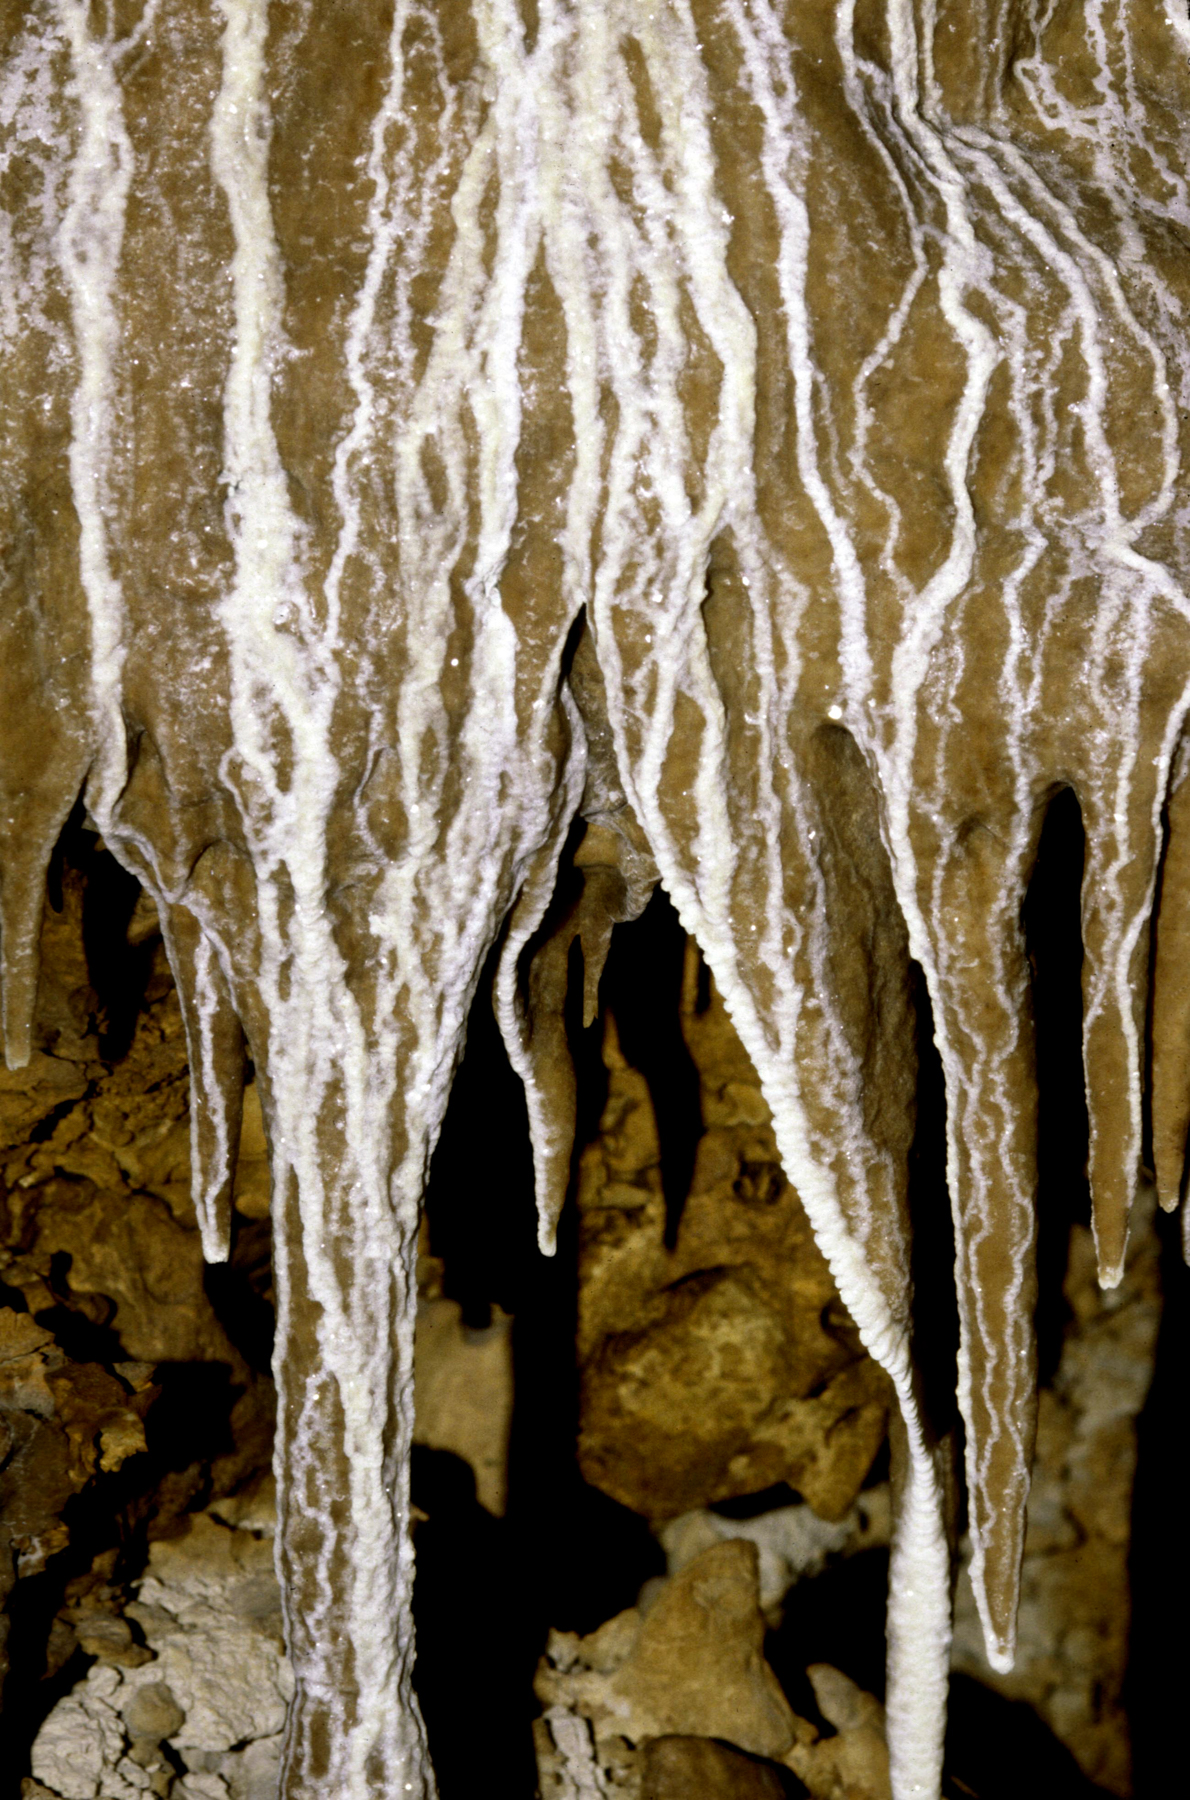 caving article photos (15 of 22).jpg